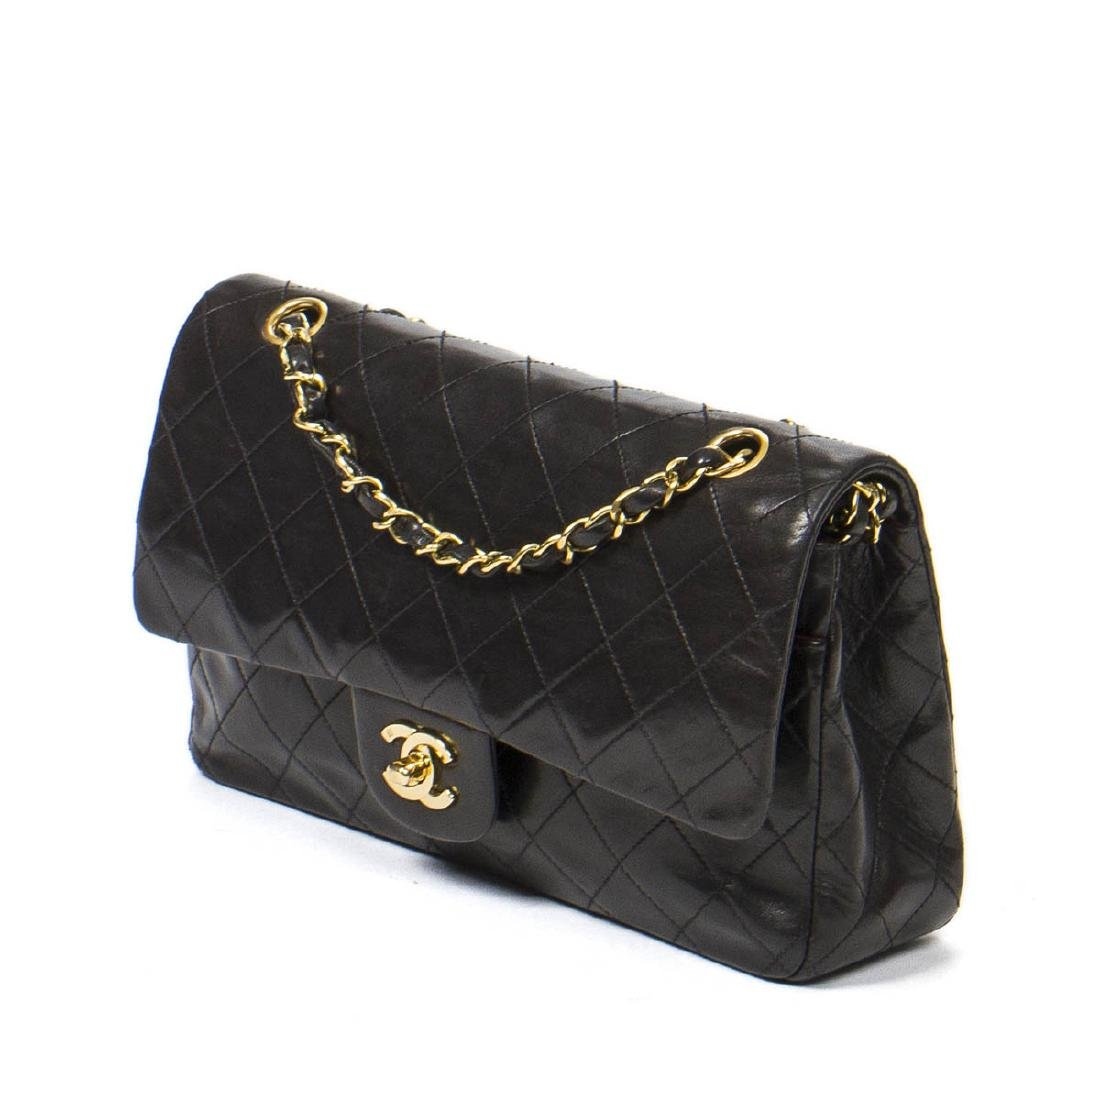 Chanel Classic Double Flap 26 in Black Quilted Leather - 2